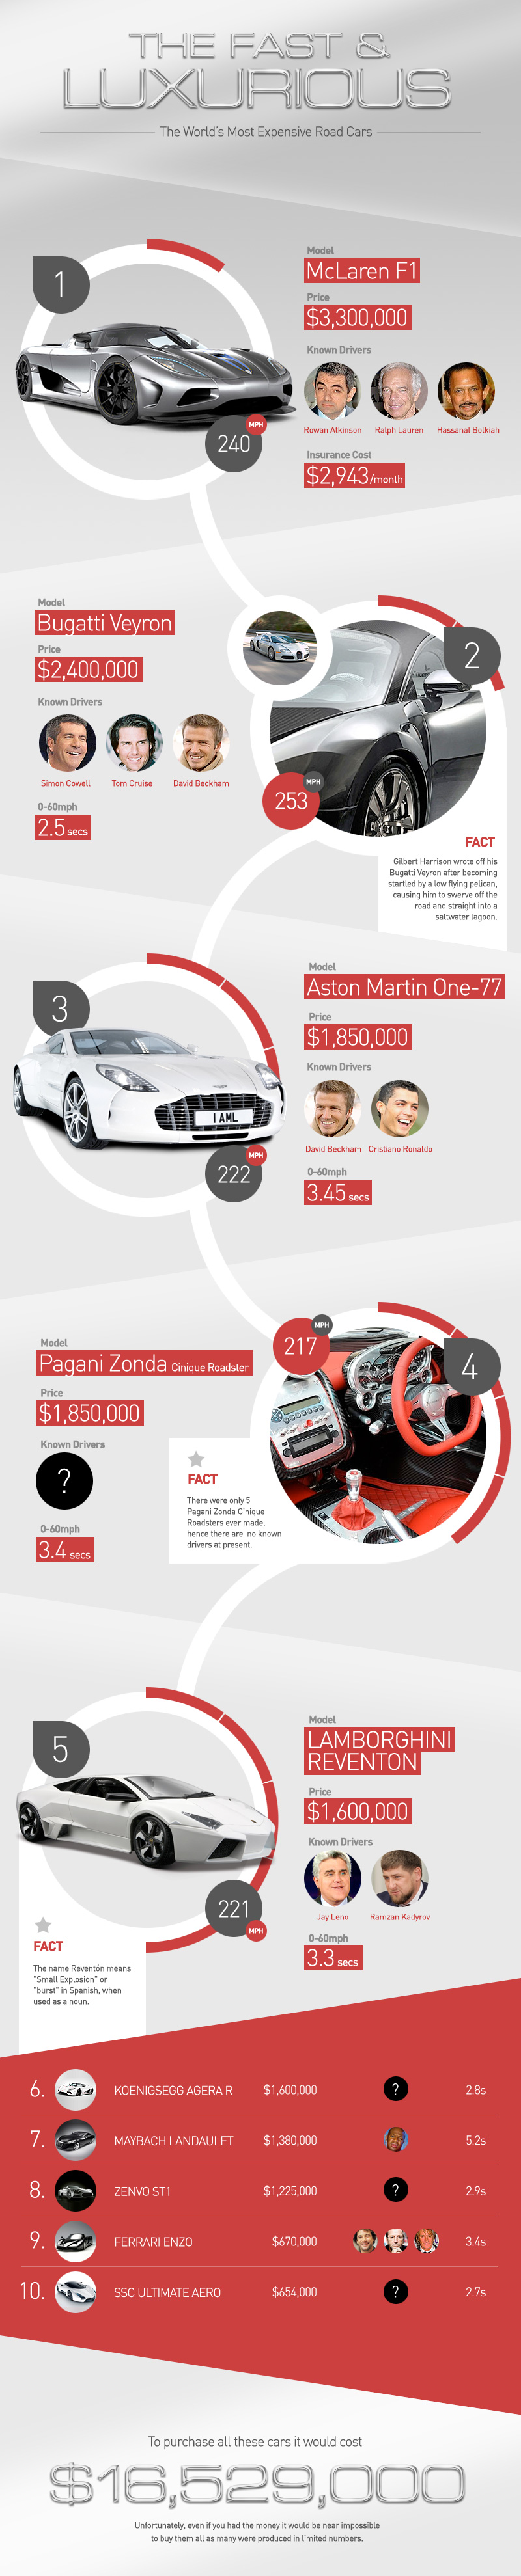 The Fast & The Luxurious: World's Most Expensive Cars